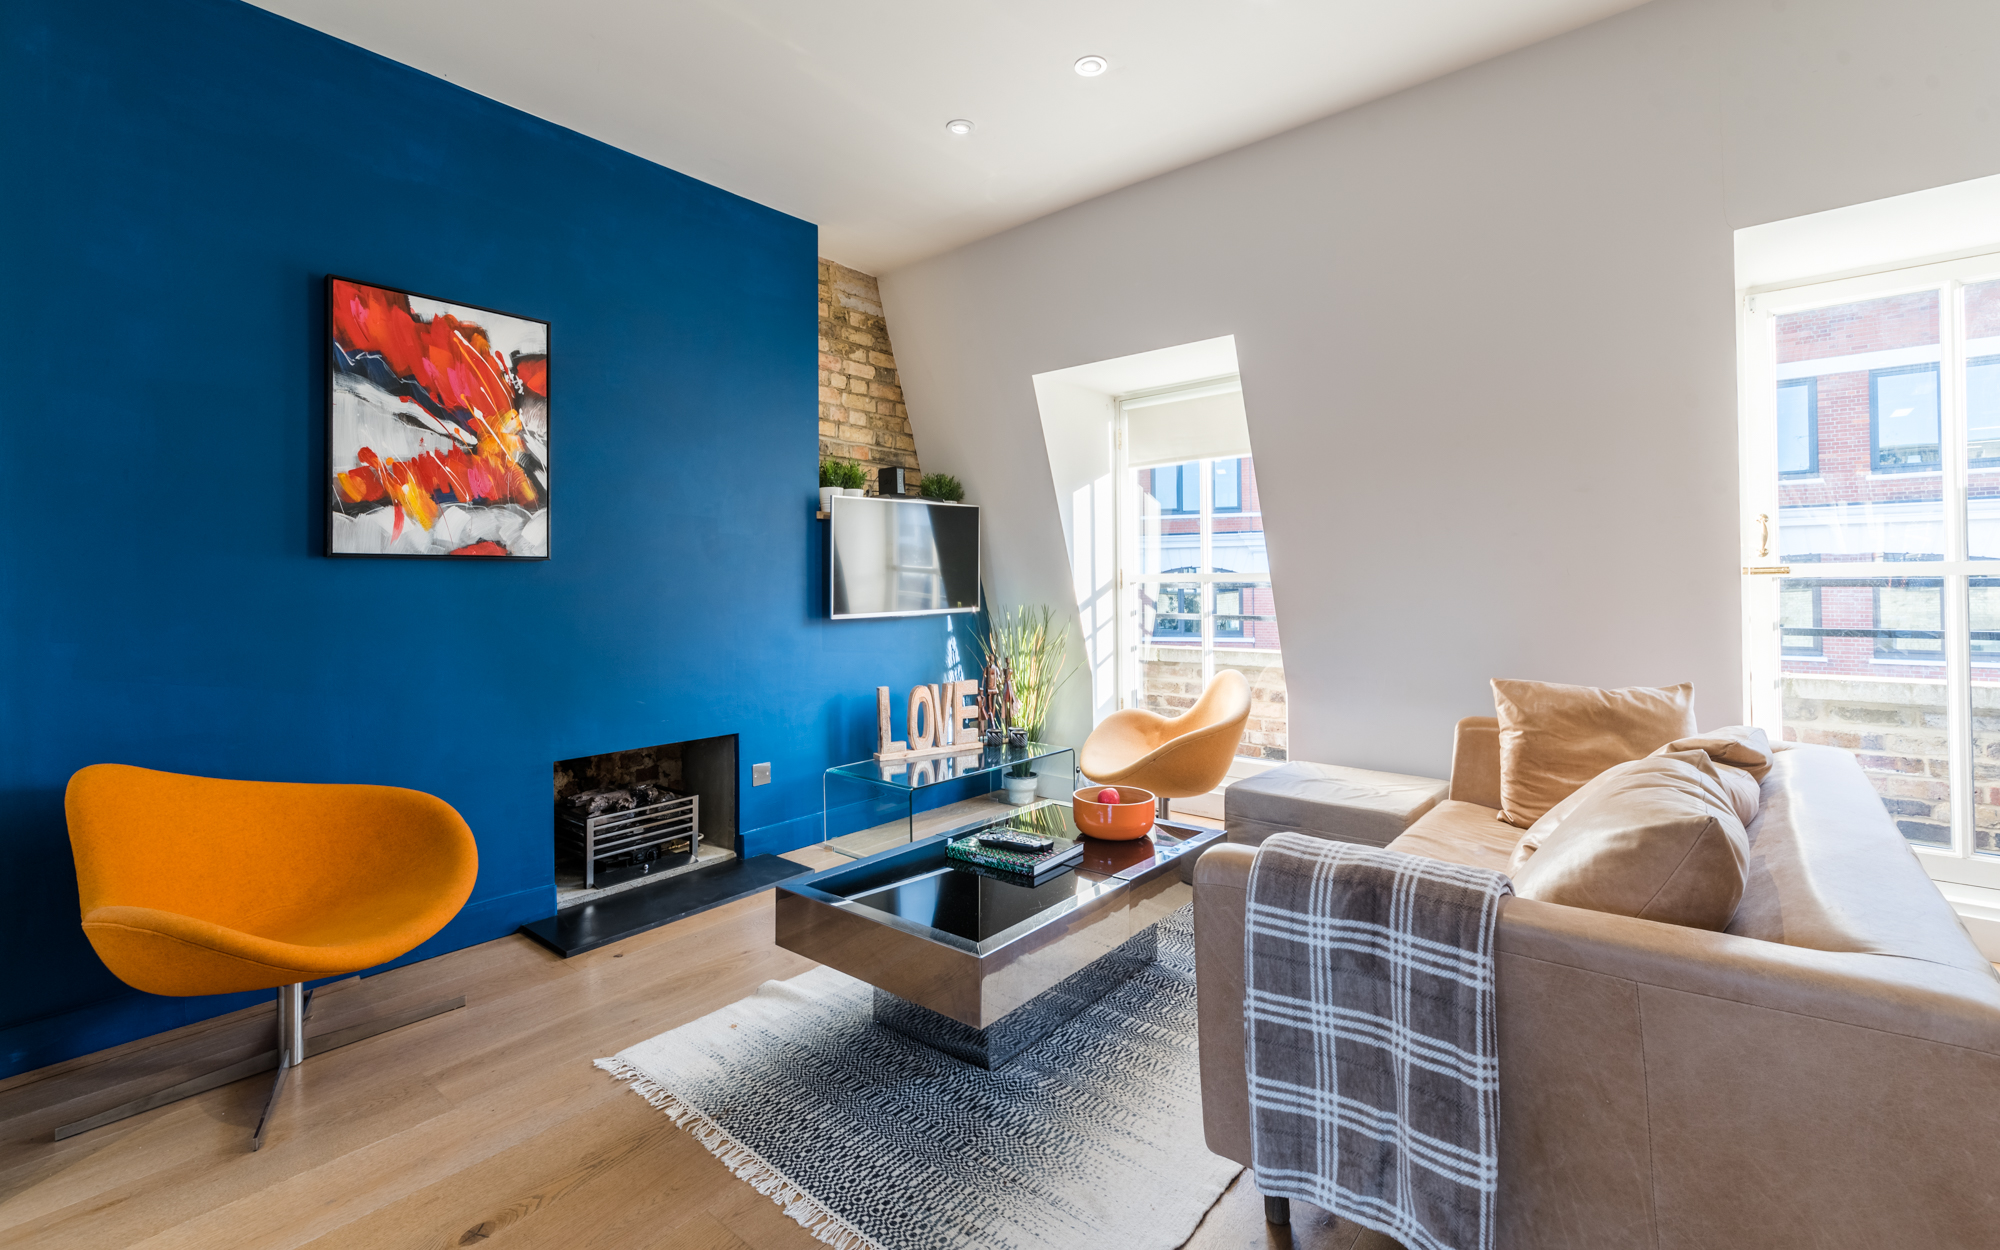 Lovelydays luxury service apartment rental - London - Fitzrovia - Foley Street II - Lovelysuite - 2 bedrooms - 2 bathrooms - Luxury living room - a34dfc1813cc - Lovelydays